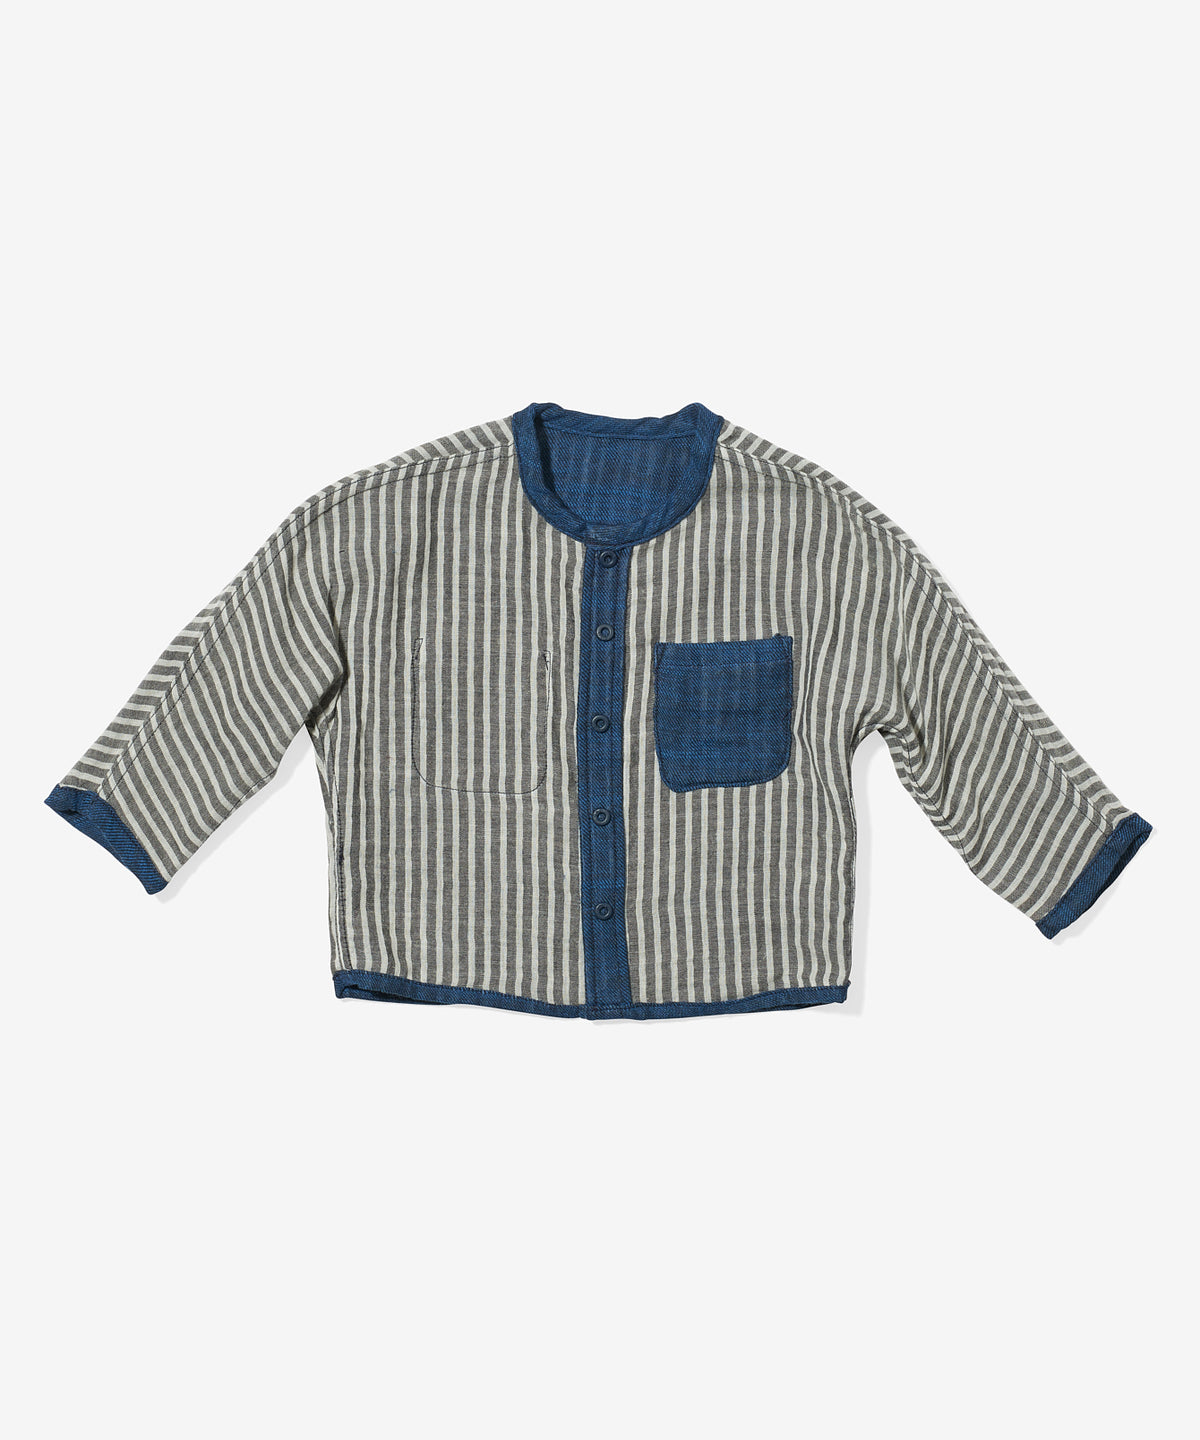 Jack Lee Baby Shirt, Indigo